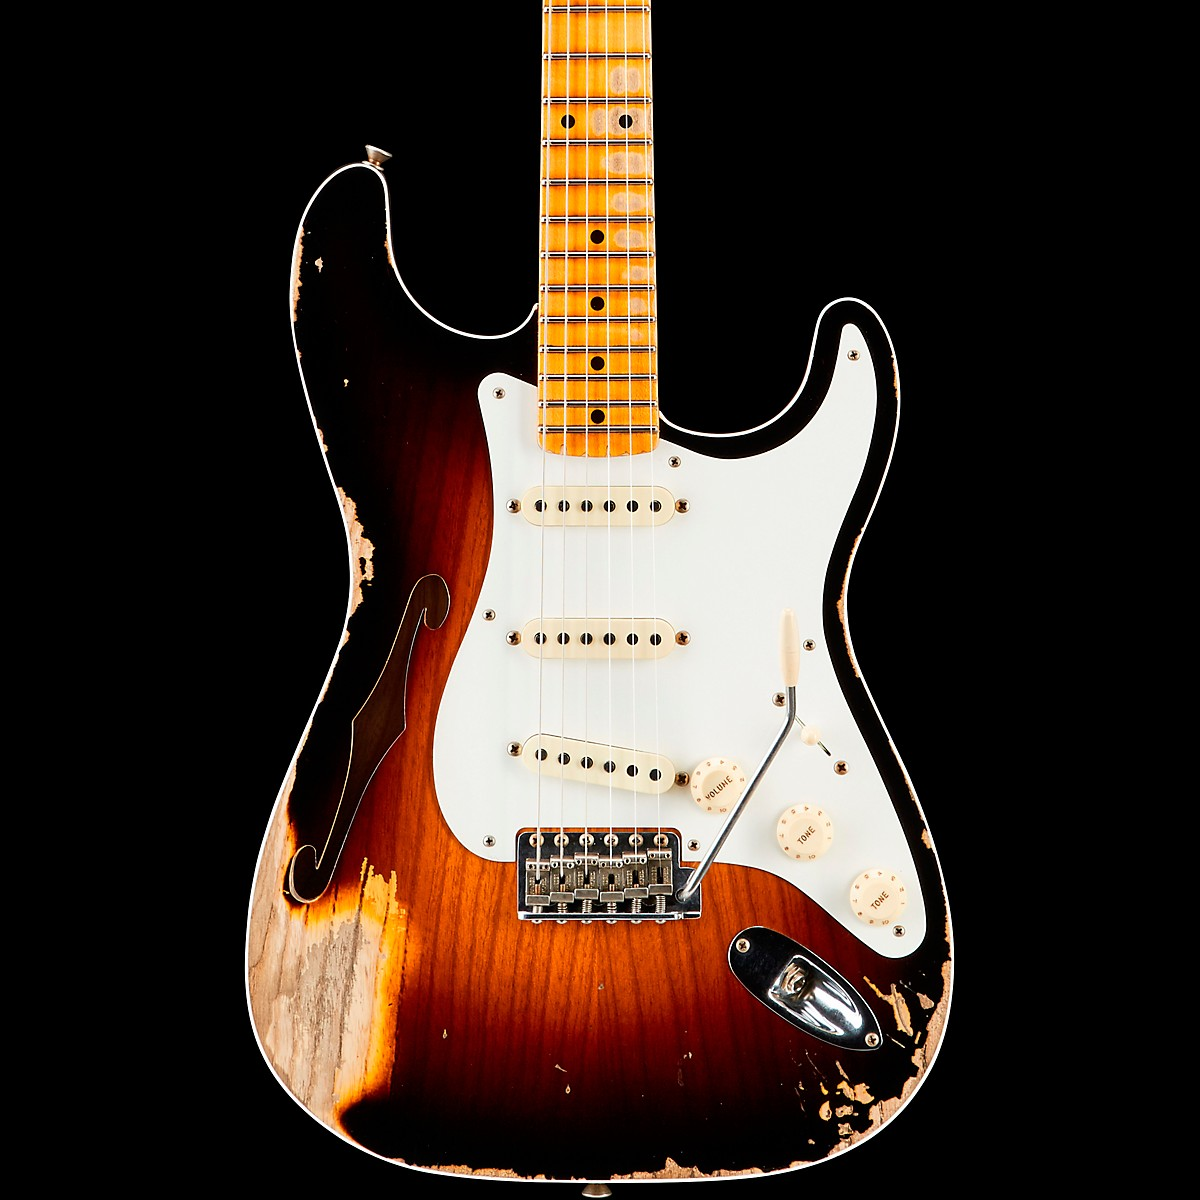 Fender Custom Shop 1956 Heavy Relic Thinline Stratocaster Electric Guitar